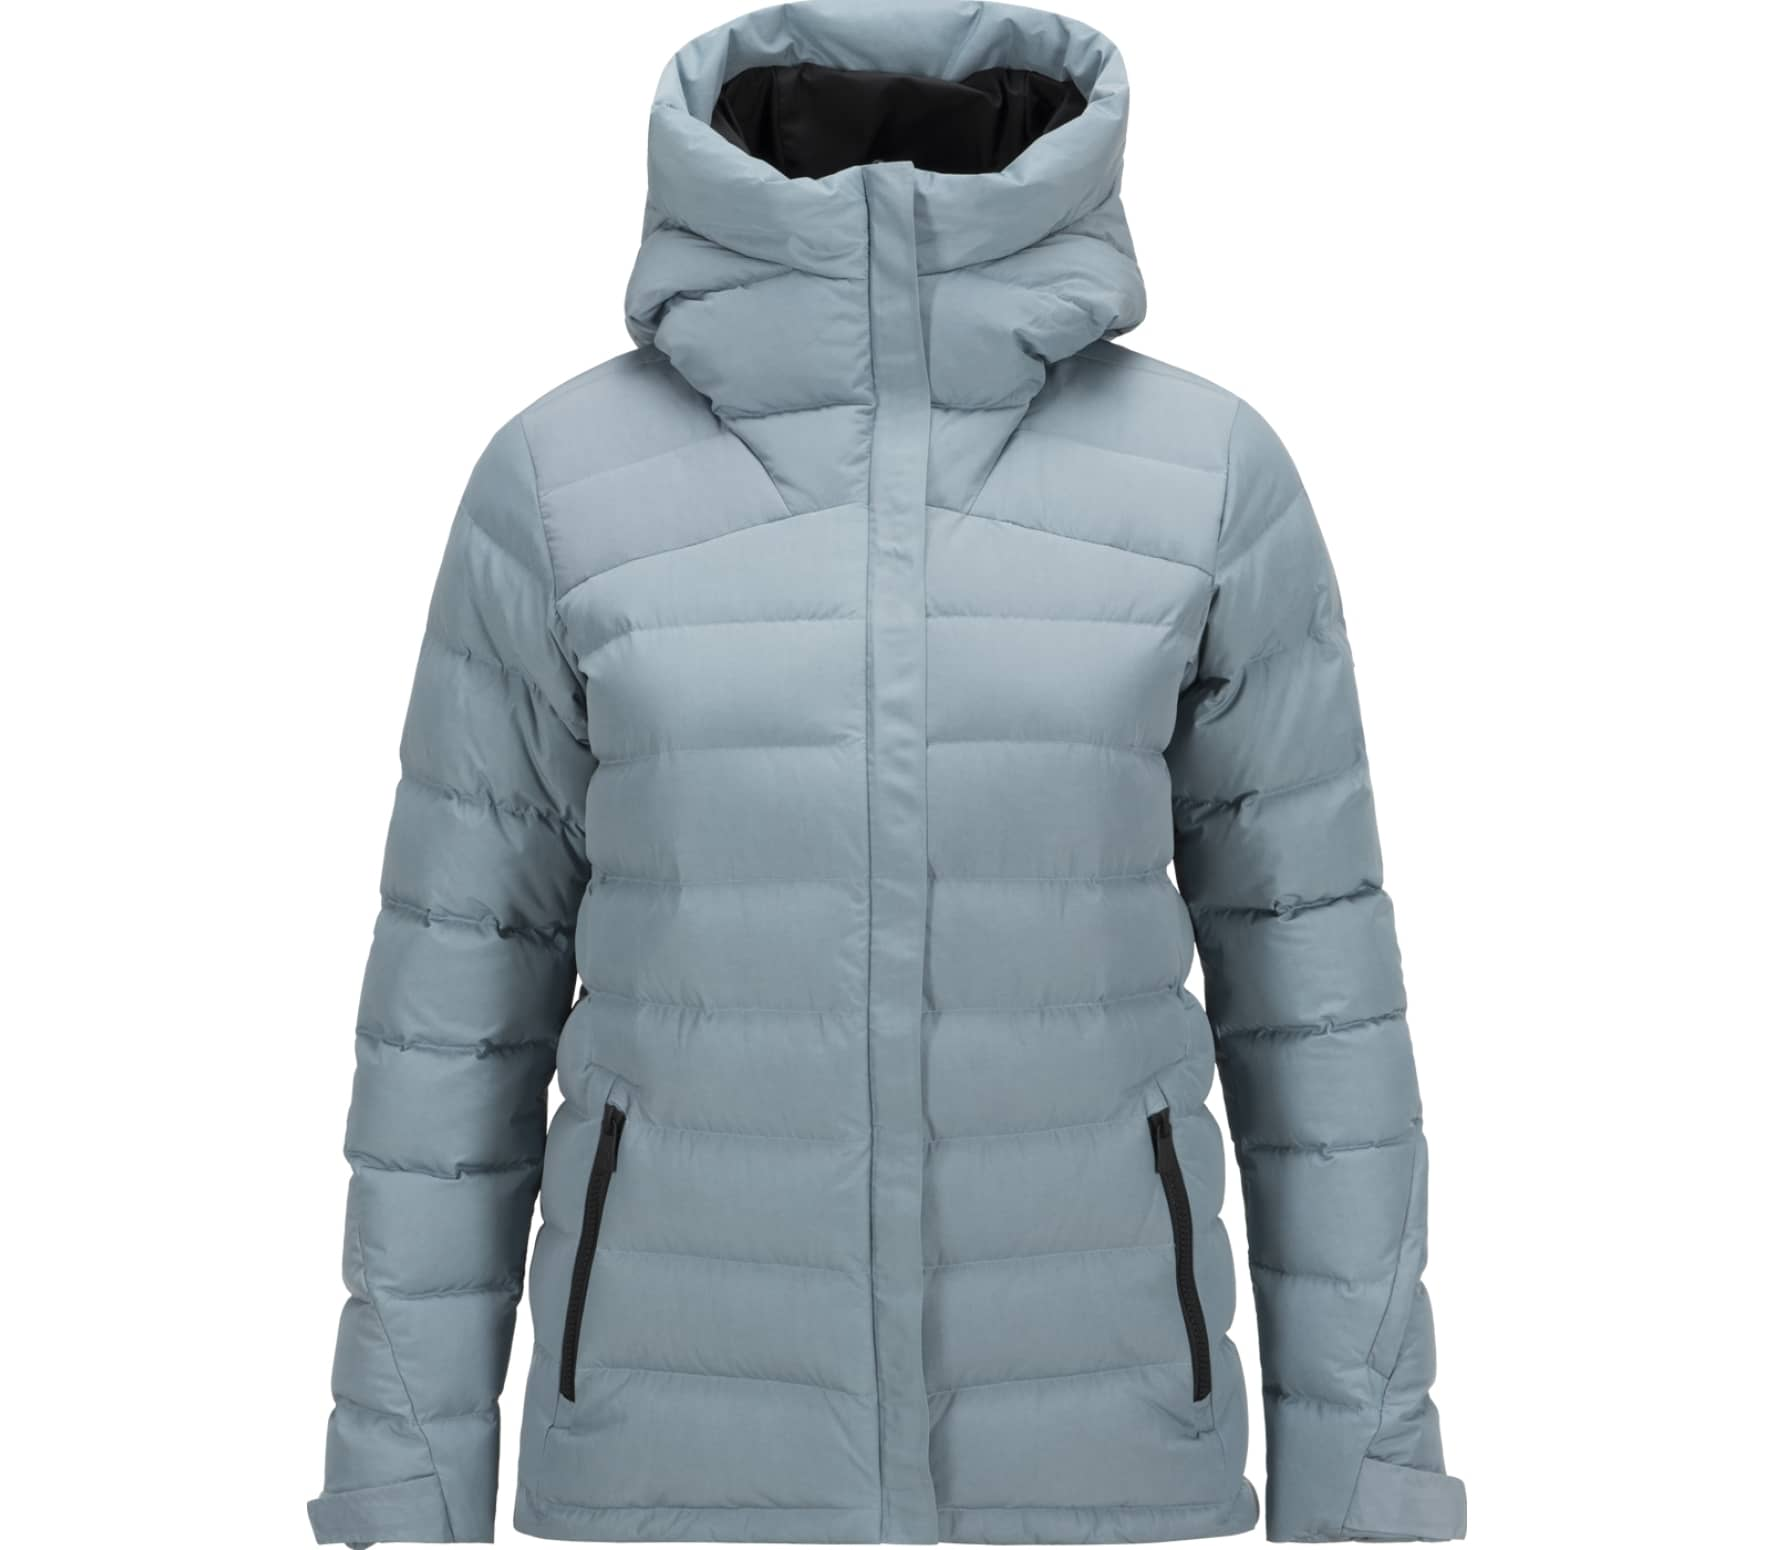 Peak Performance - Spokane Damen Daunenjacke (blau) im Online Shop ... 892e5cf830